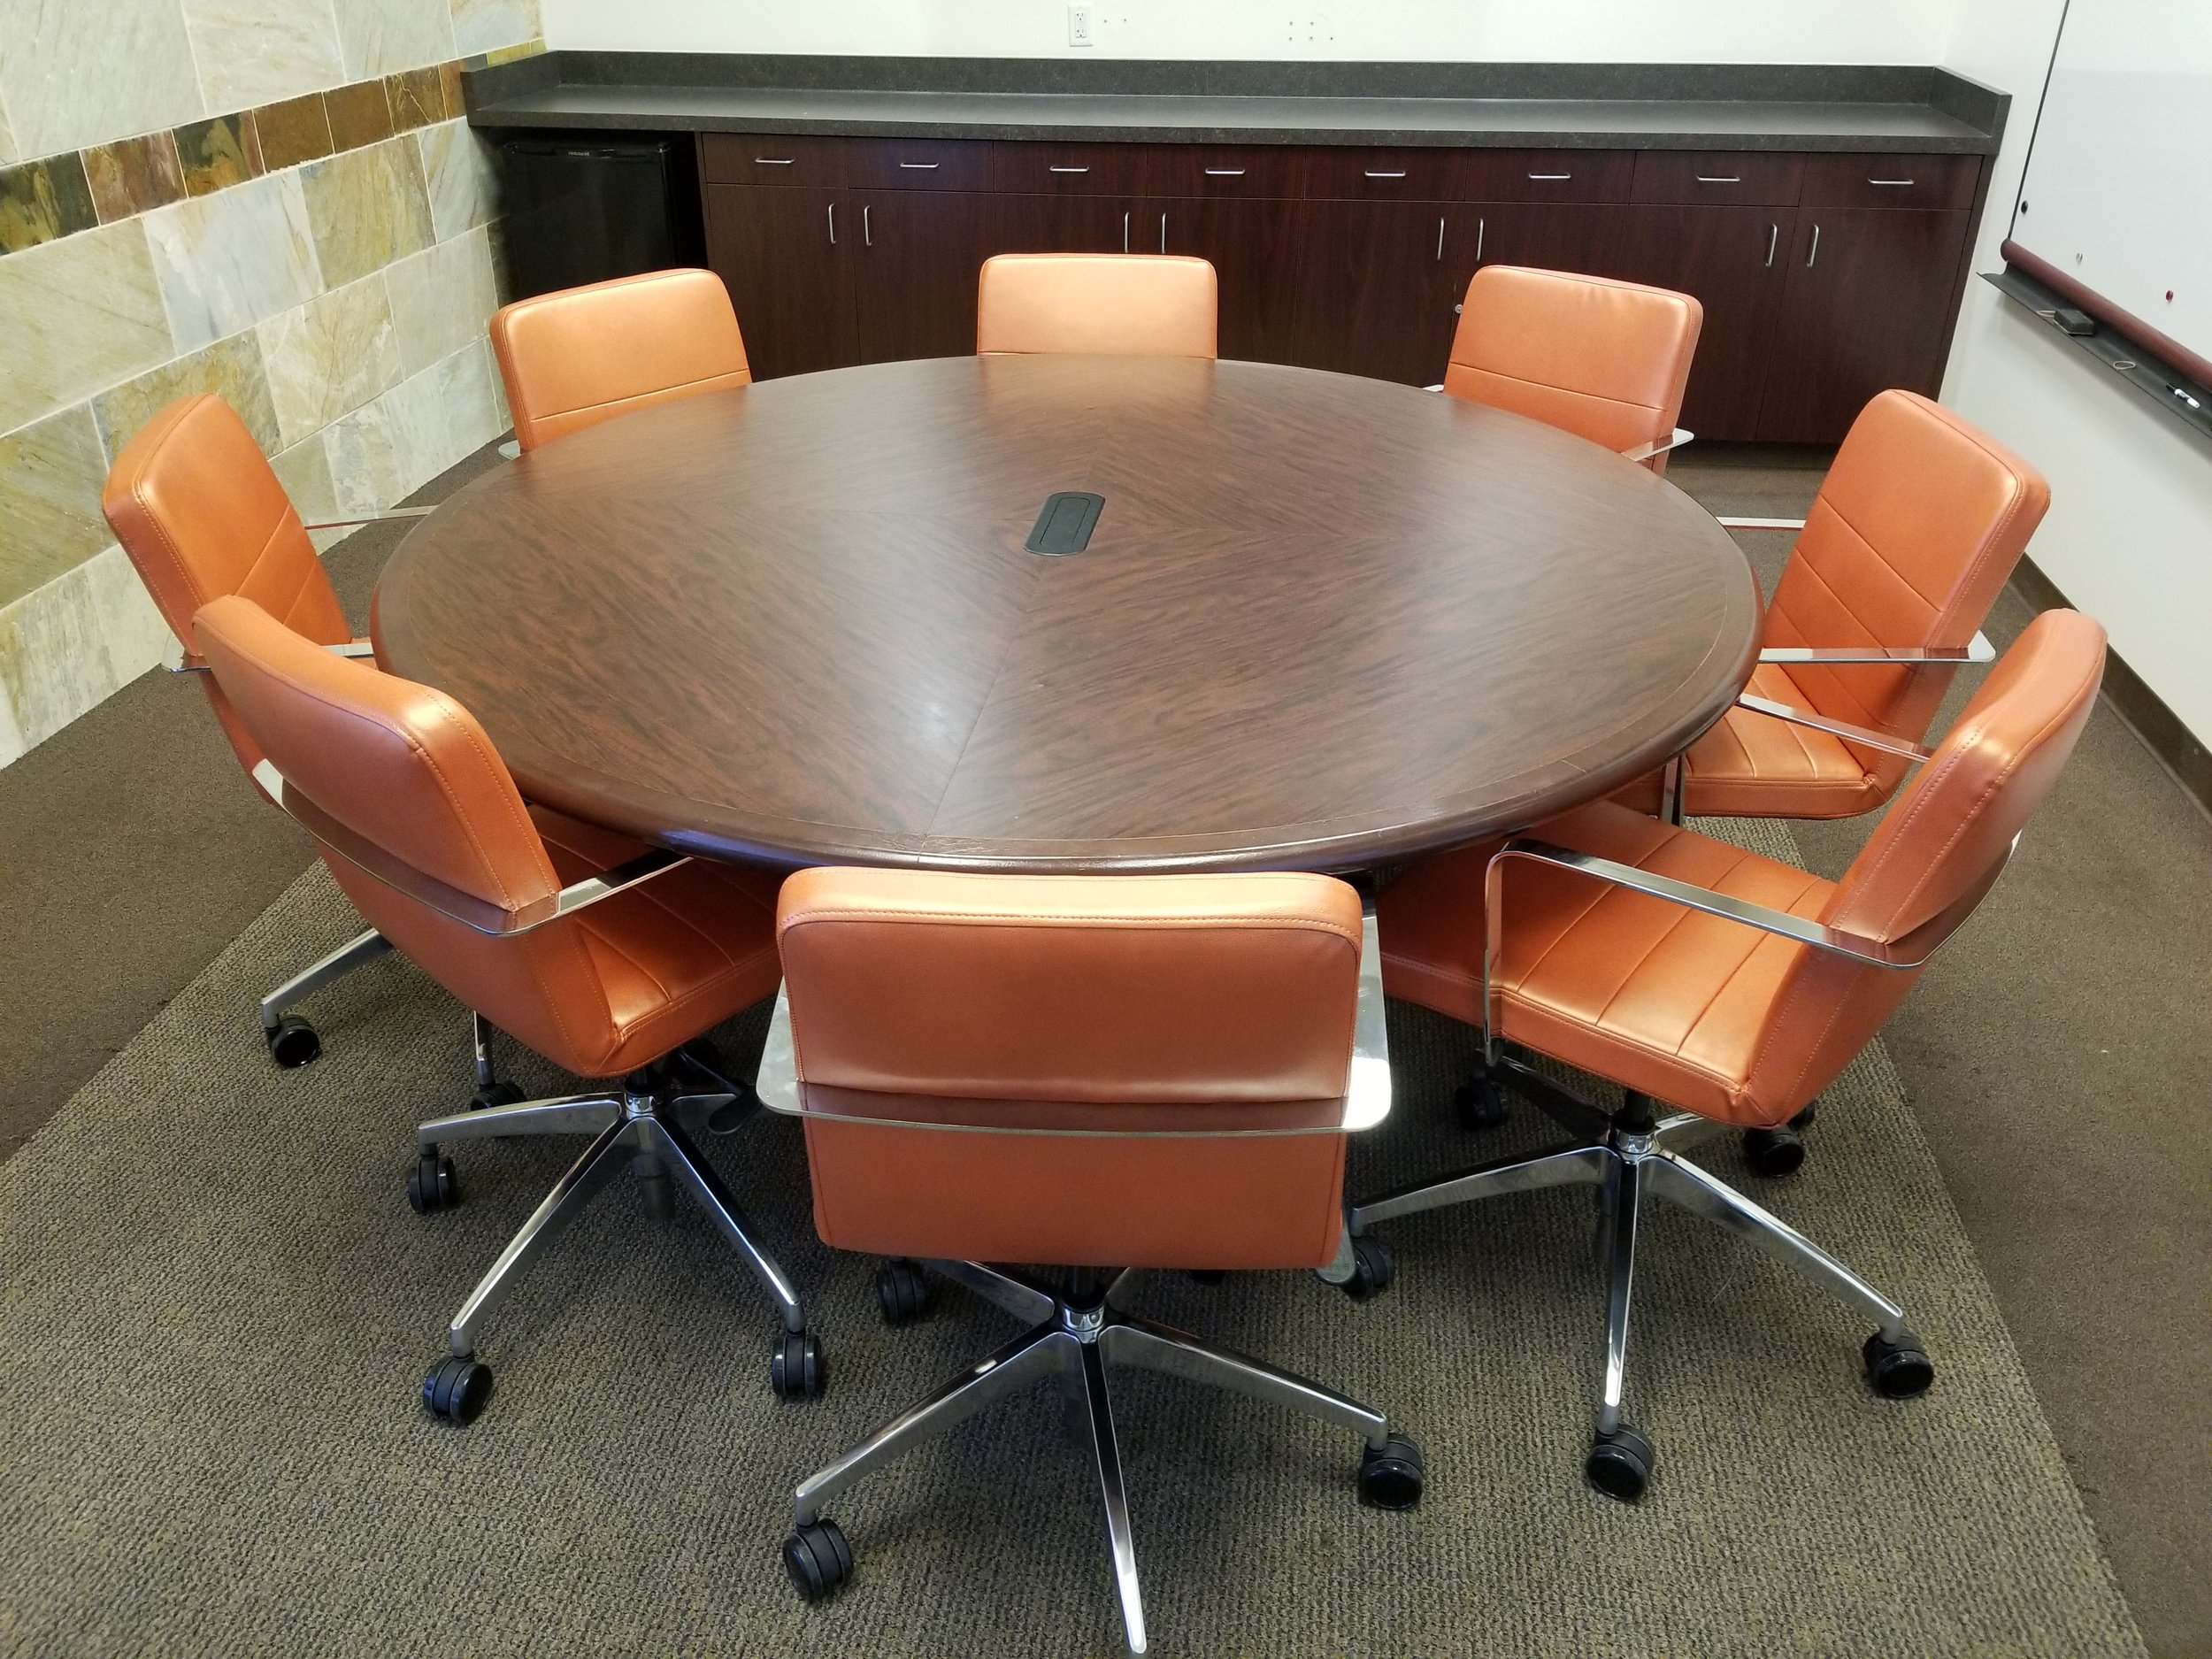 "Consolidated Office Systems    The Diddy Series was the perfect solution for a 60"" round conference table. With the small footprint the Diddy has the ability to fit in many different environments. Plus the mid-century modern wrap around chrome arm helps bring back the 1960's Mad Men days."